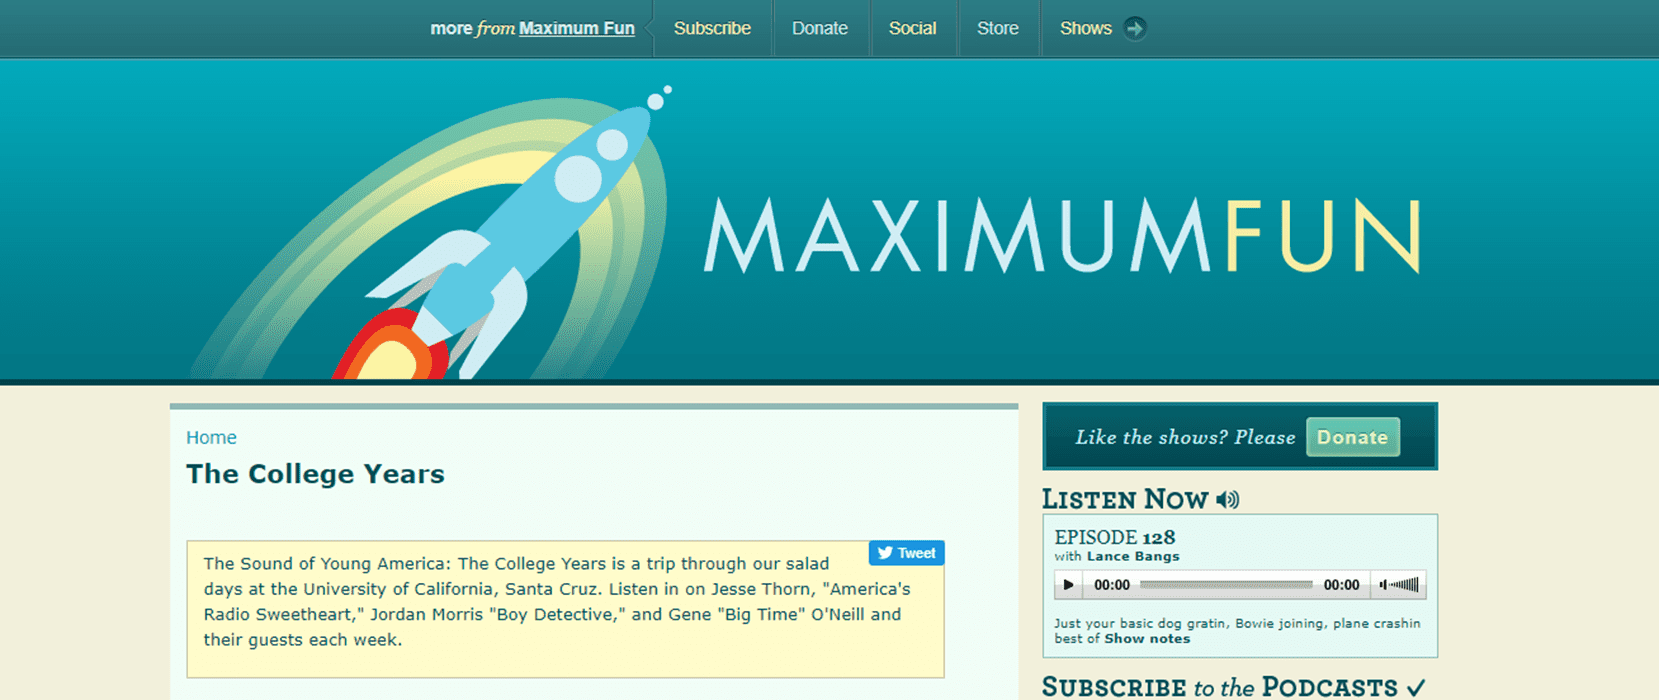 Screenshot of the Maximum Fun website, which is home to the Sound of Young America podcast screenshot